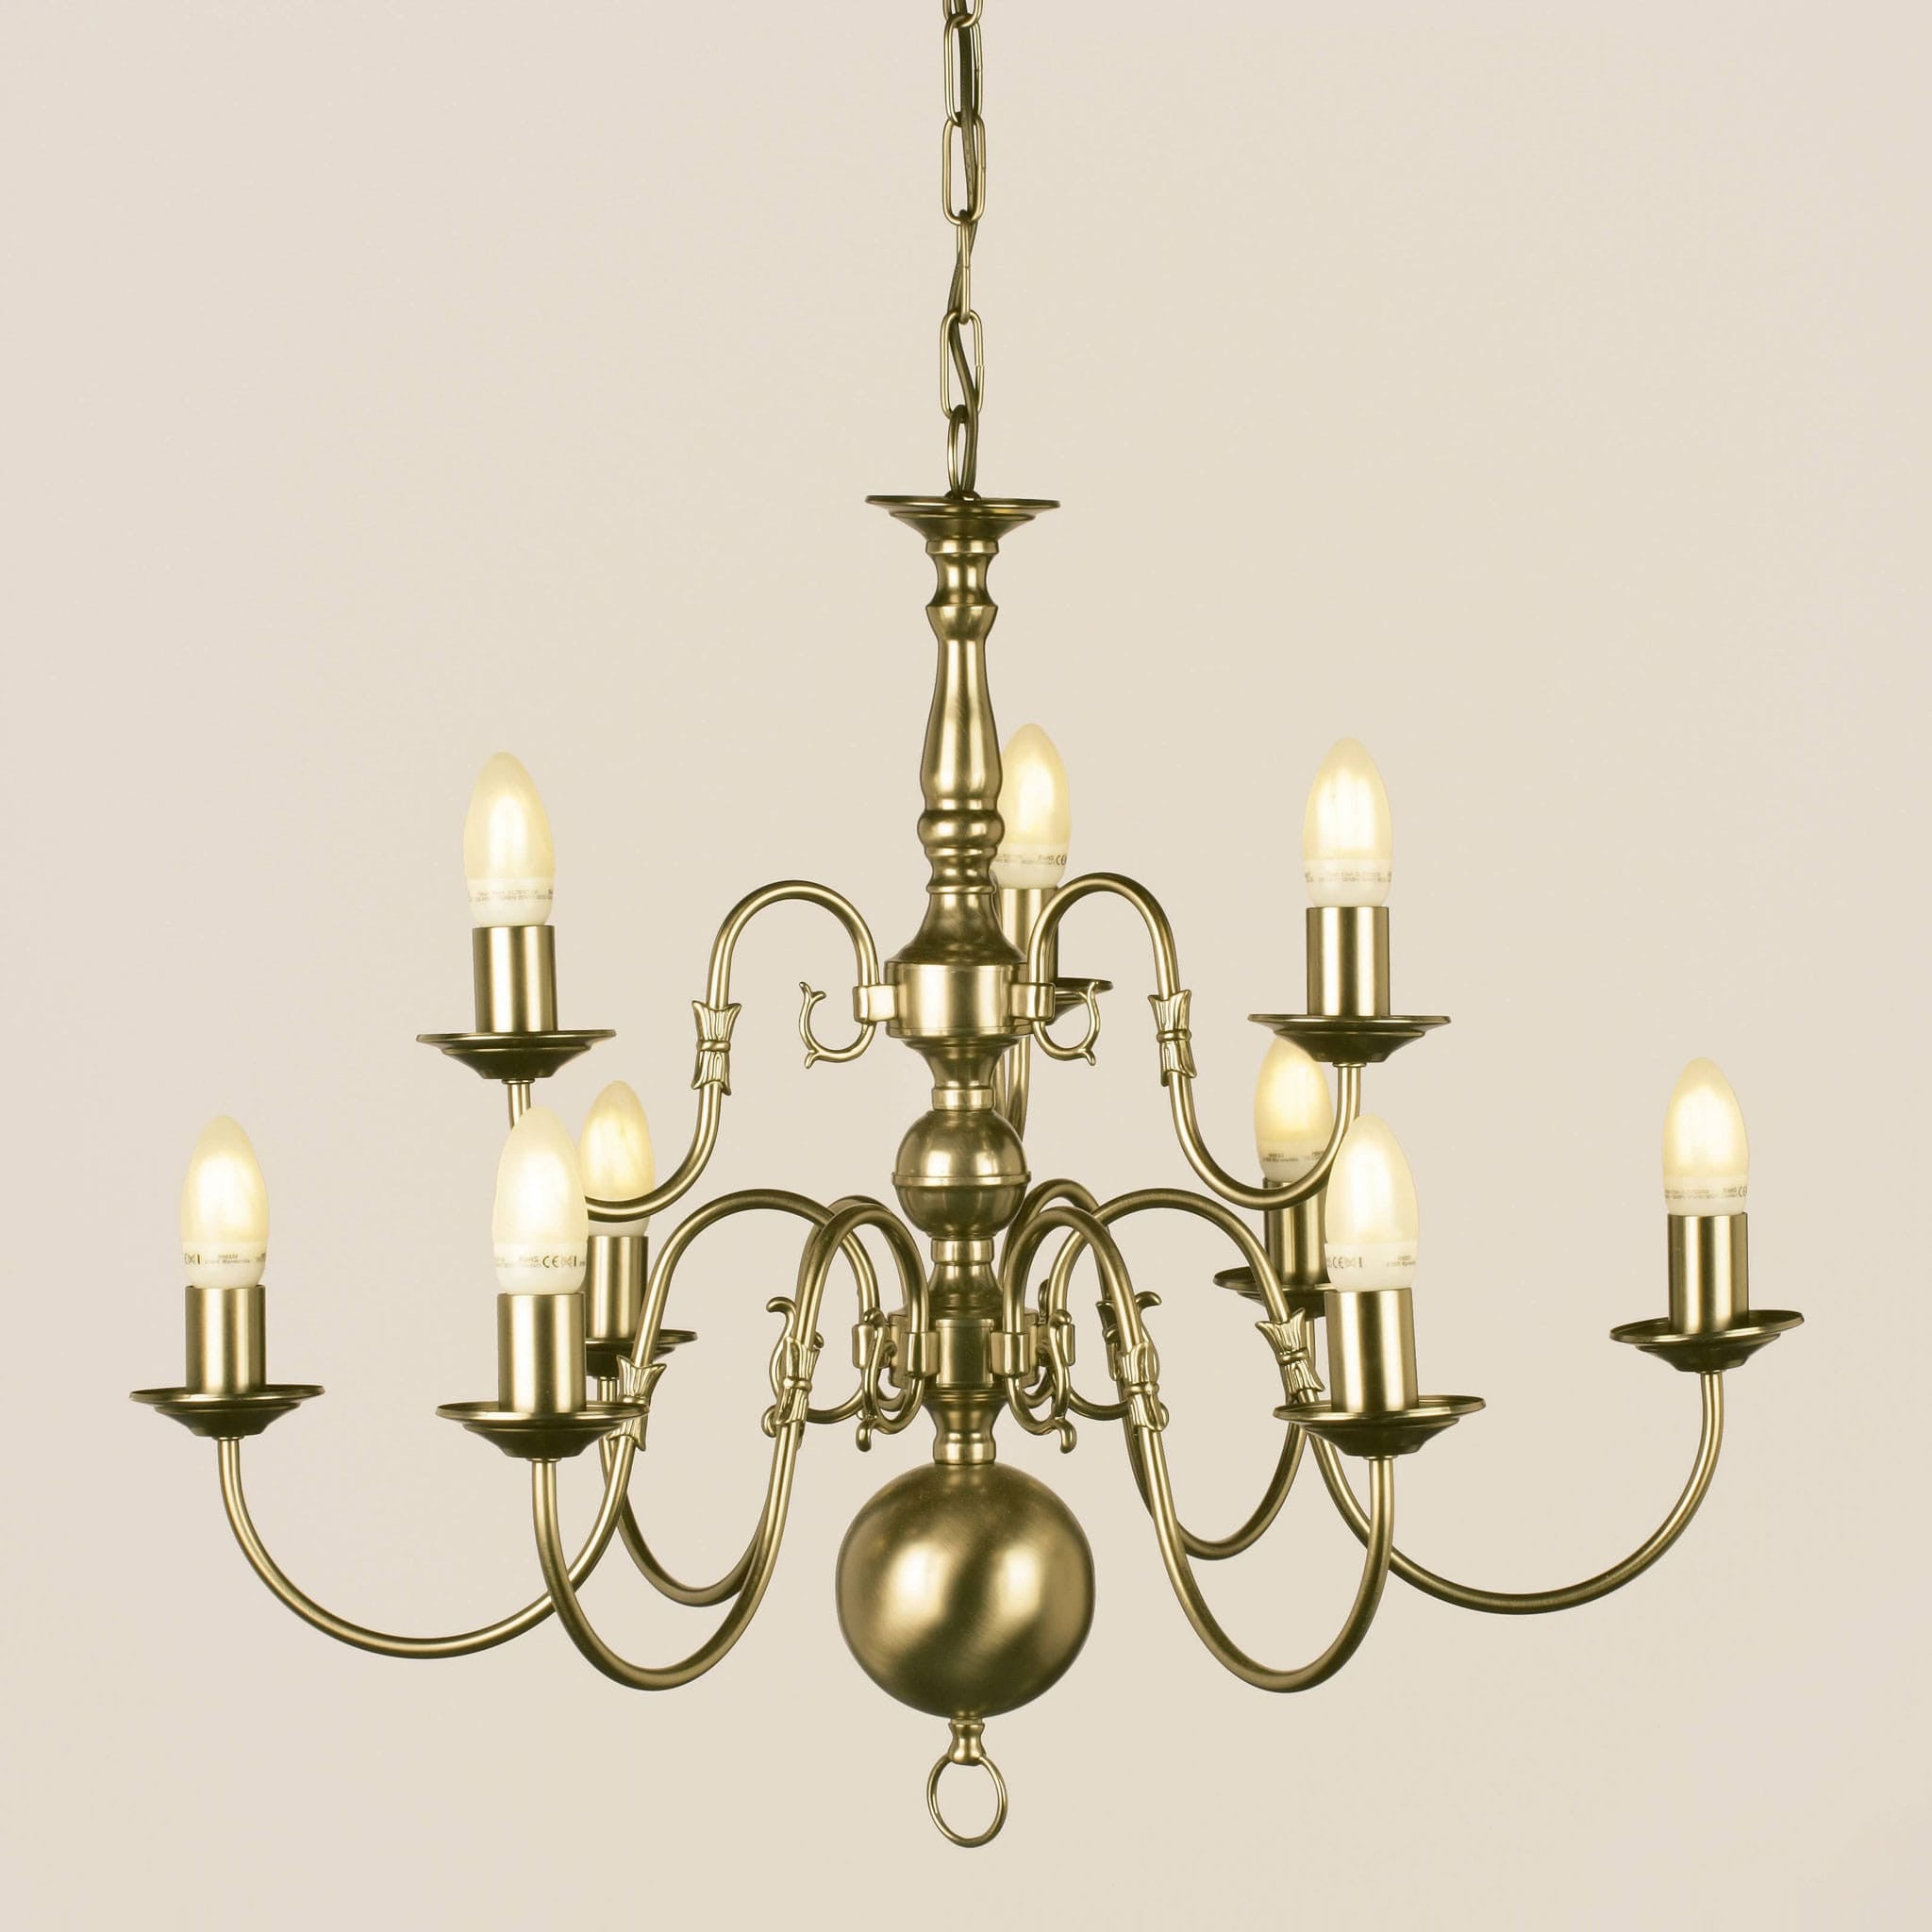 spanish century lighting vintage antique wrought sale chandeliers style chandelier for iron